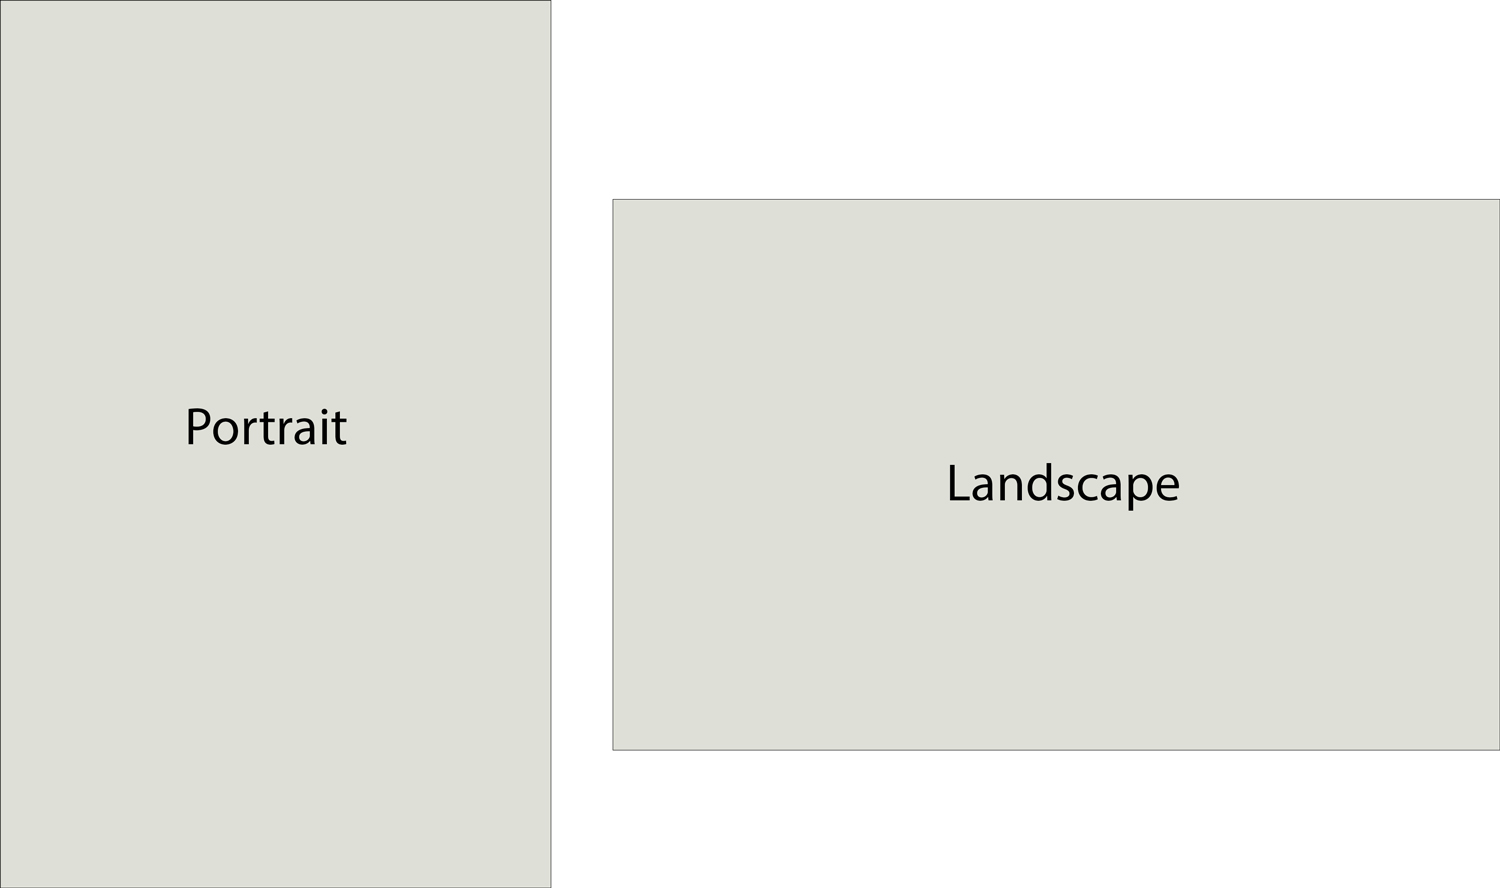 portrait and landscape orientation examples